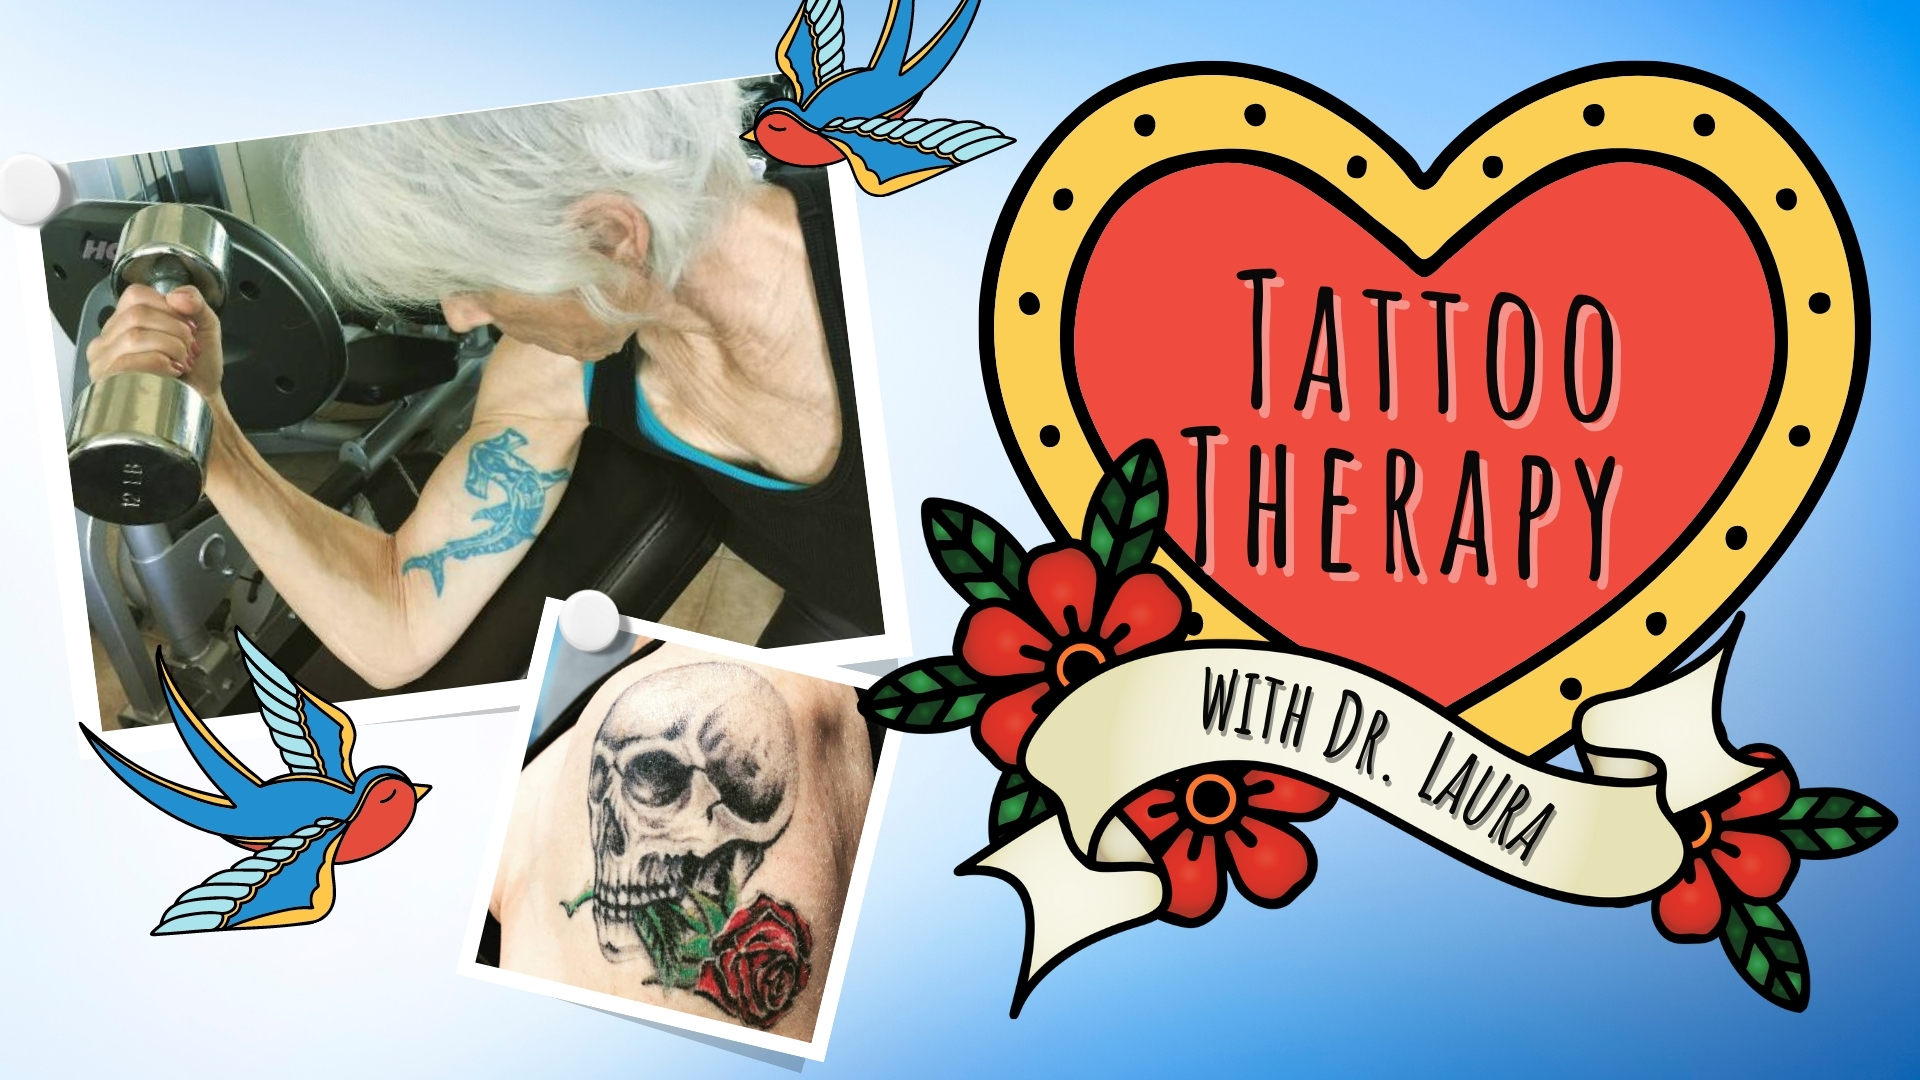 YouTube: Tattoo Therapy with Dr. Laura